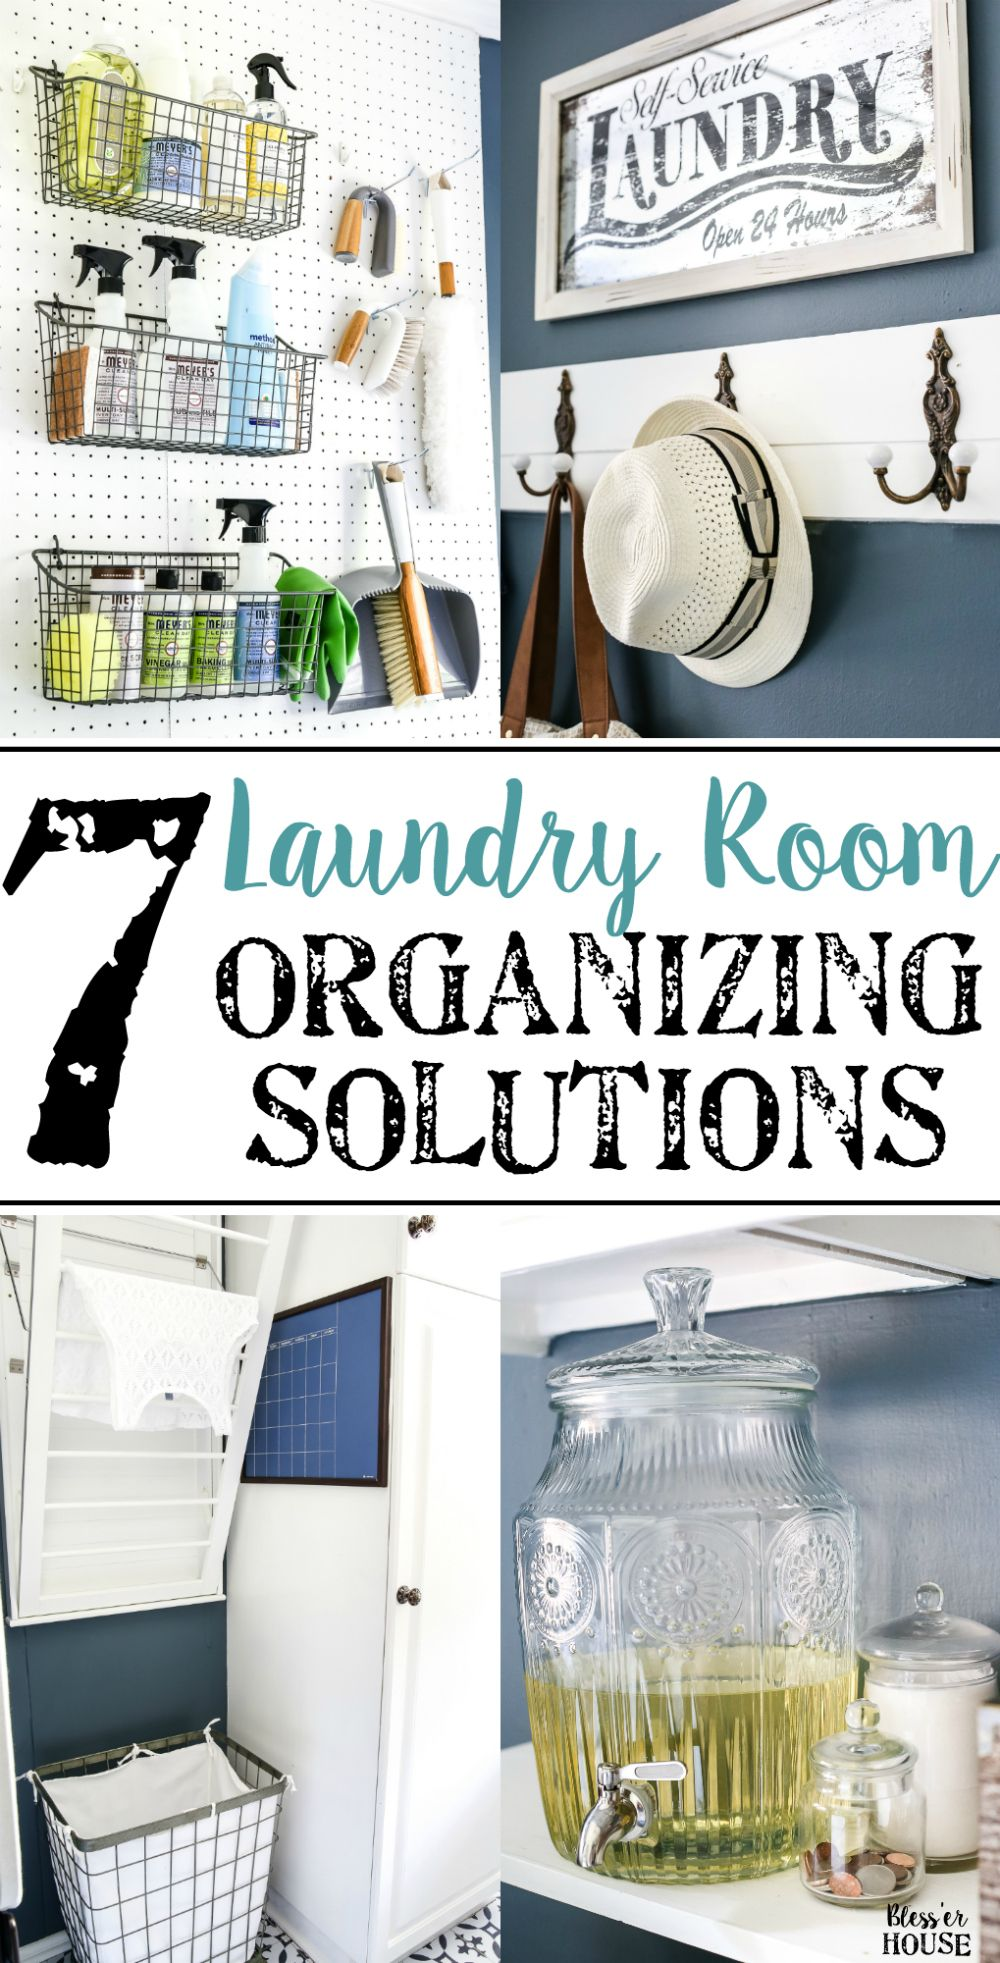 7 Must Have Laundry Room Organizing Solutions Blesserhouse Essential Items To Get Your Off Like A Well Oiled Machine How